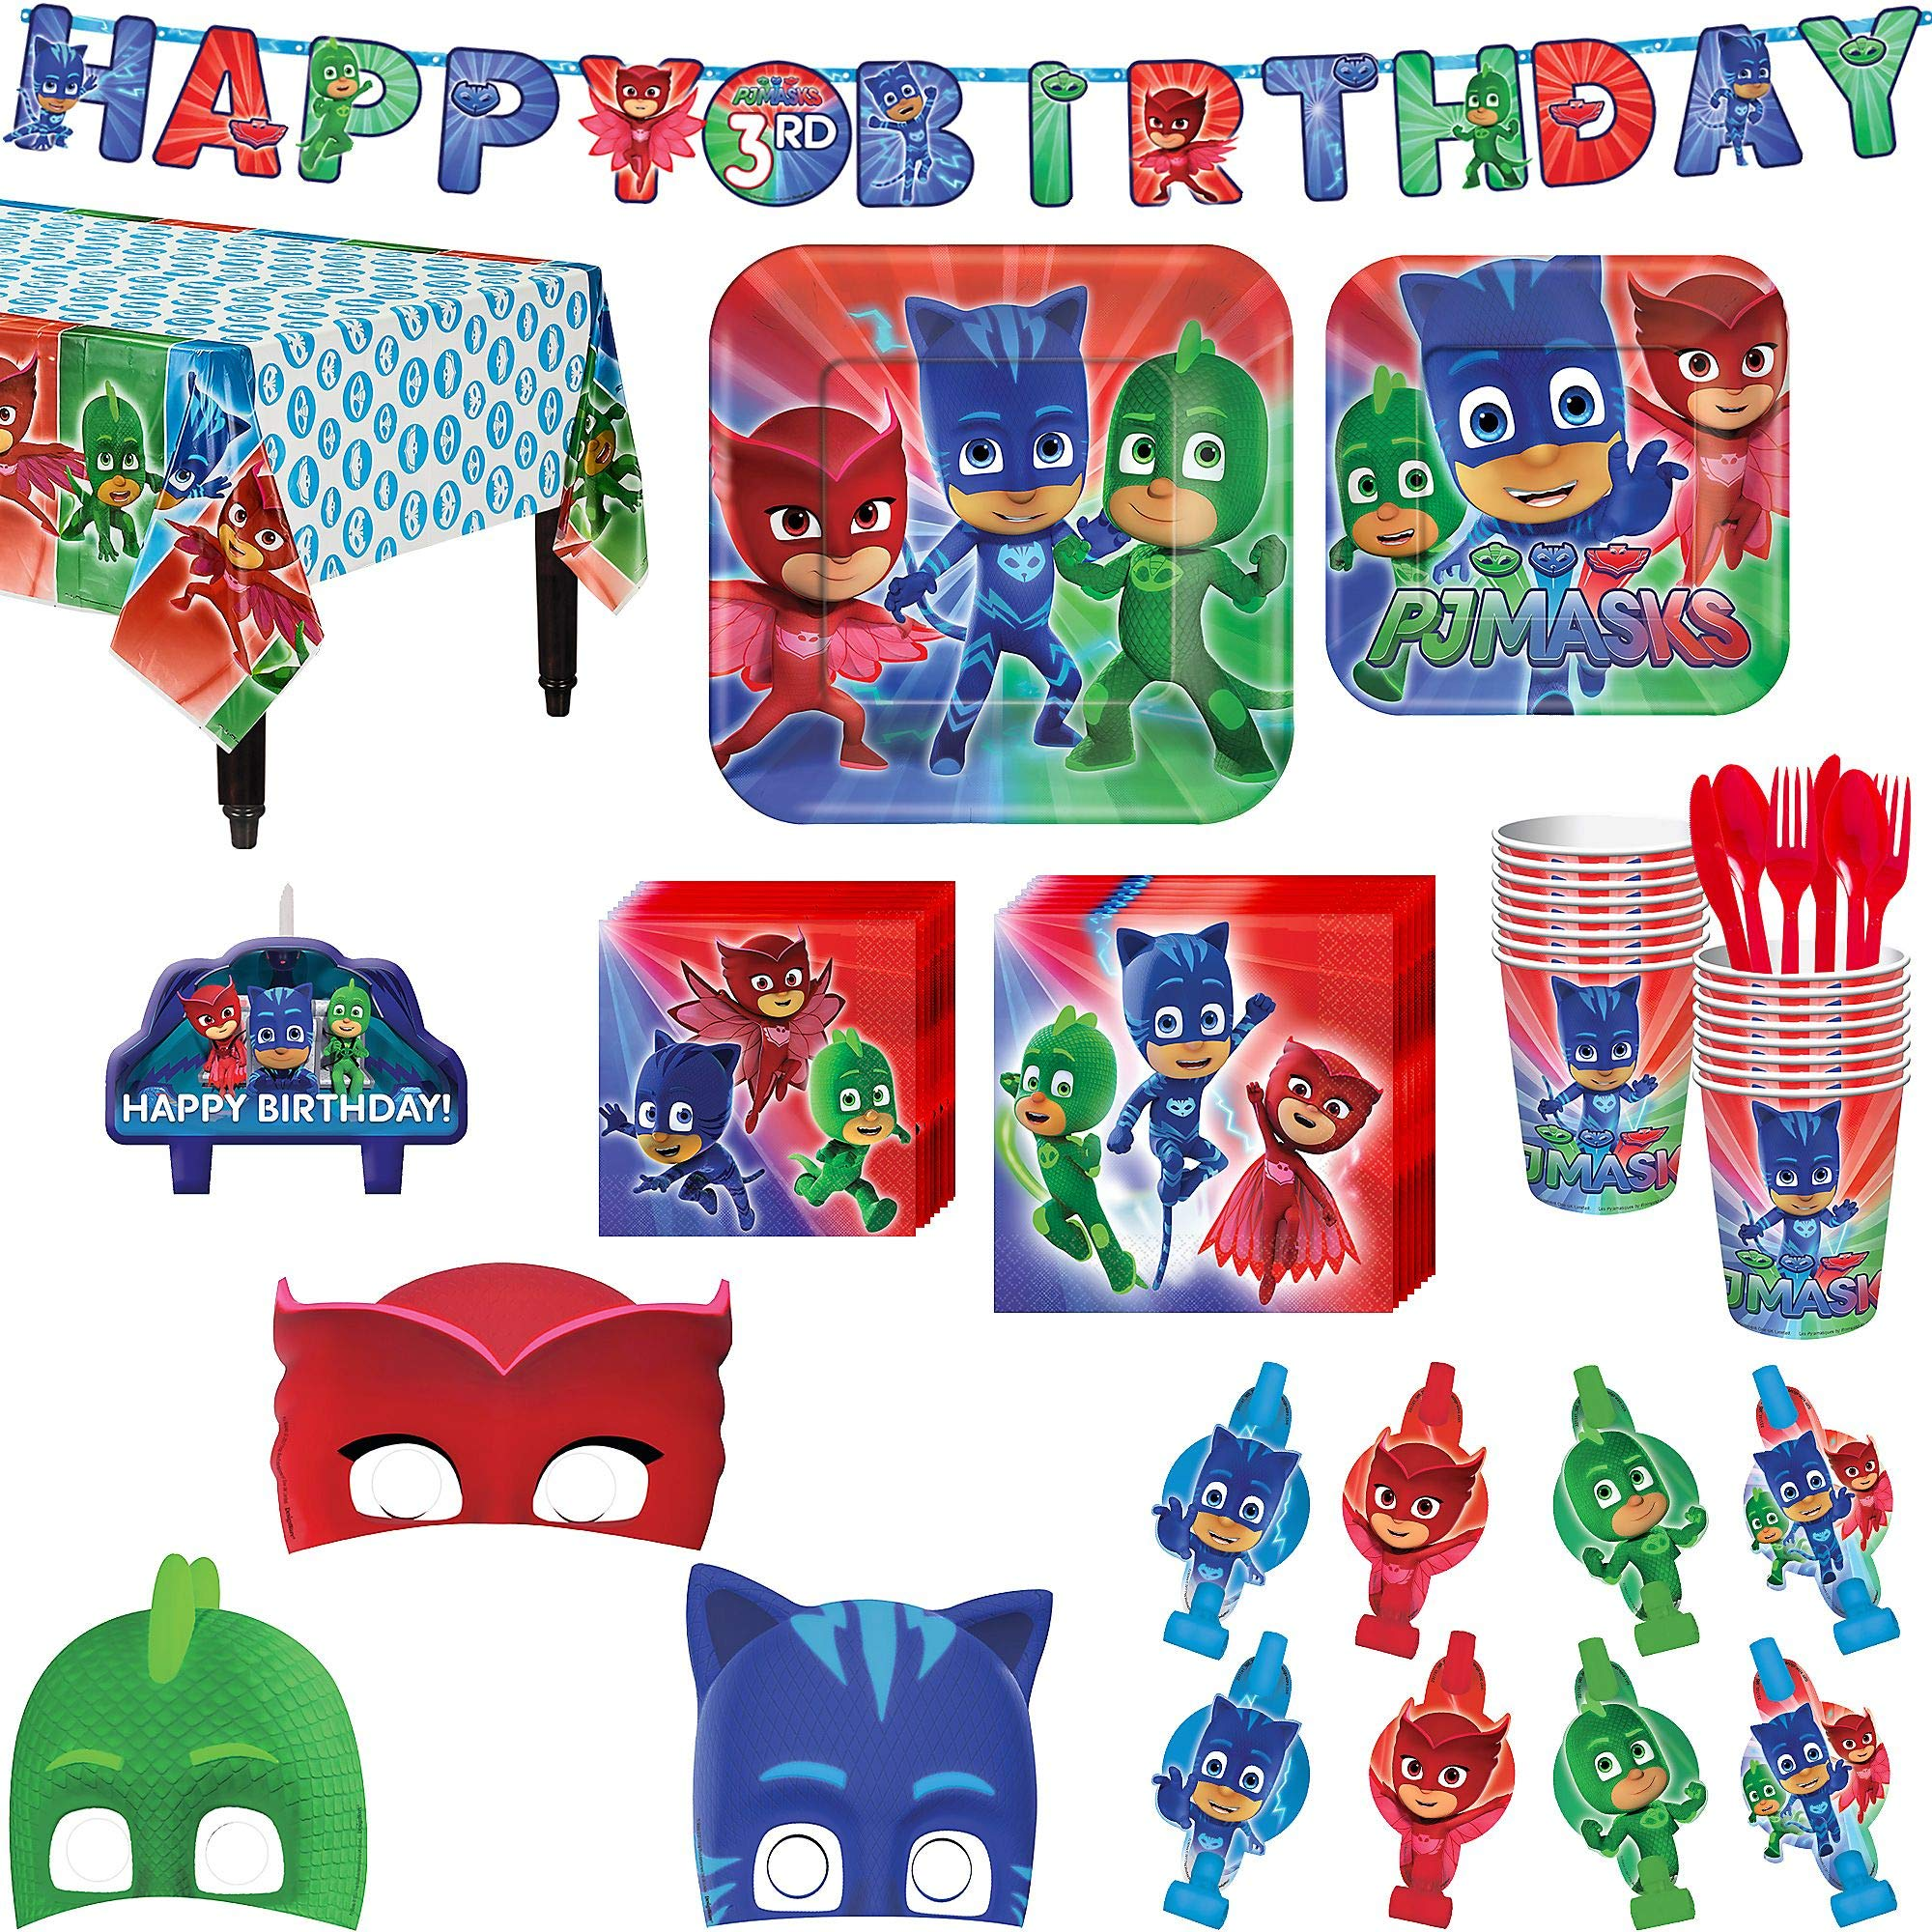 PJ Masks Birthday Party Kit, Includes Happy Birthday Banner, Candles and Eye Masks, Serves 16, by Party City